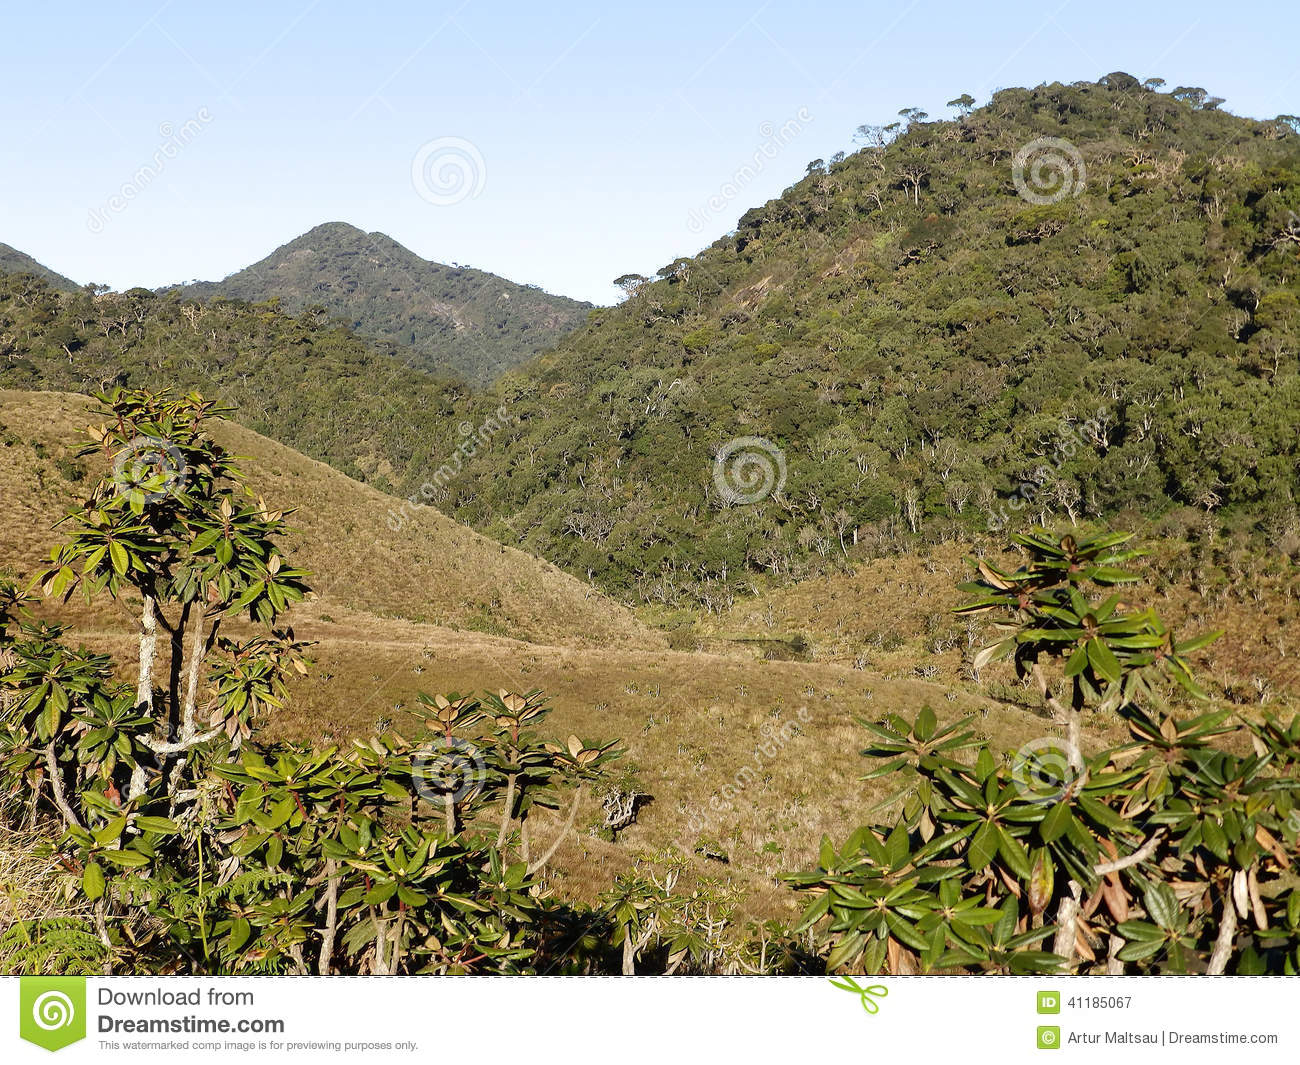 paysage en parc national horton plains sri lanka image stock image du herbe for t 41185067. Black Bedroom Furniture Sets. Home Design Ideas